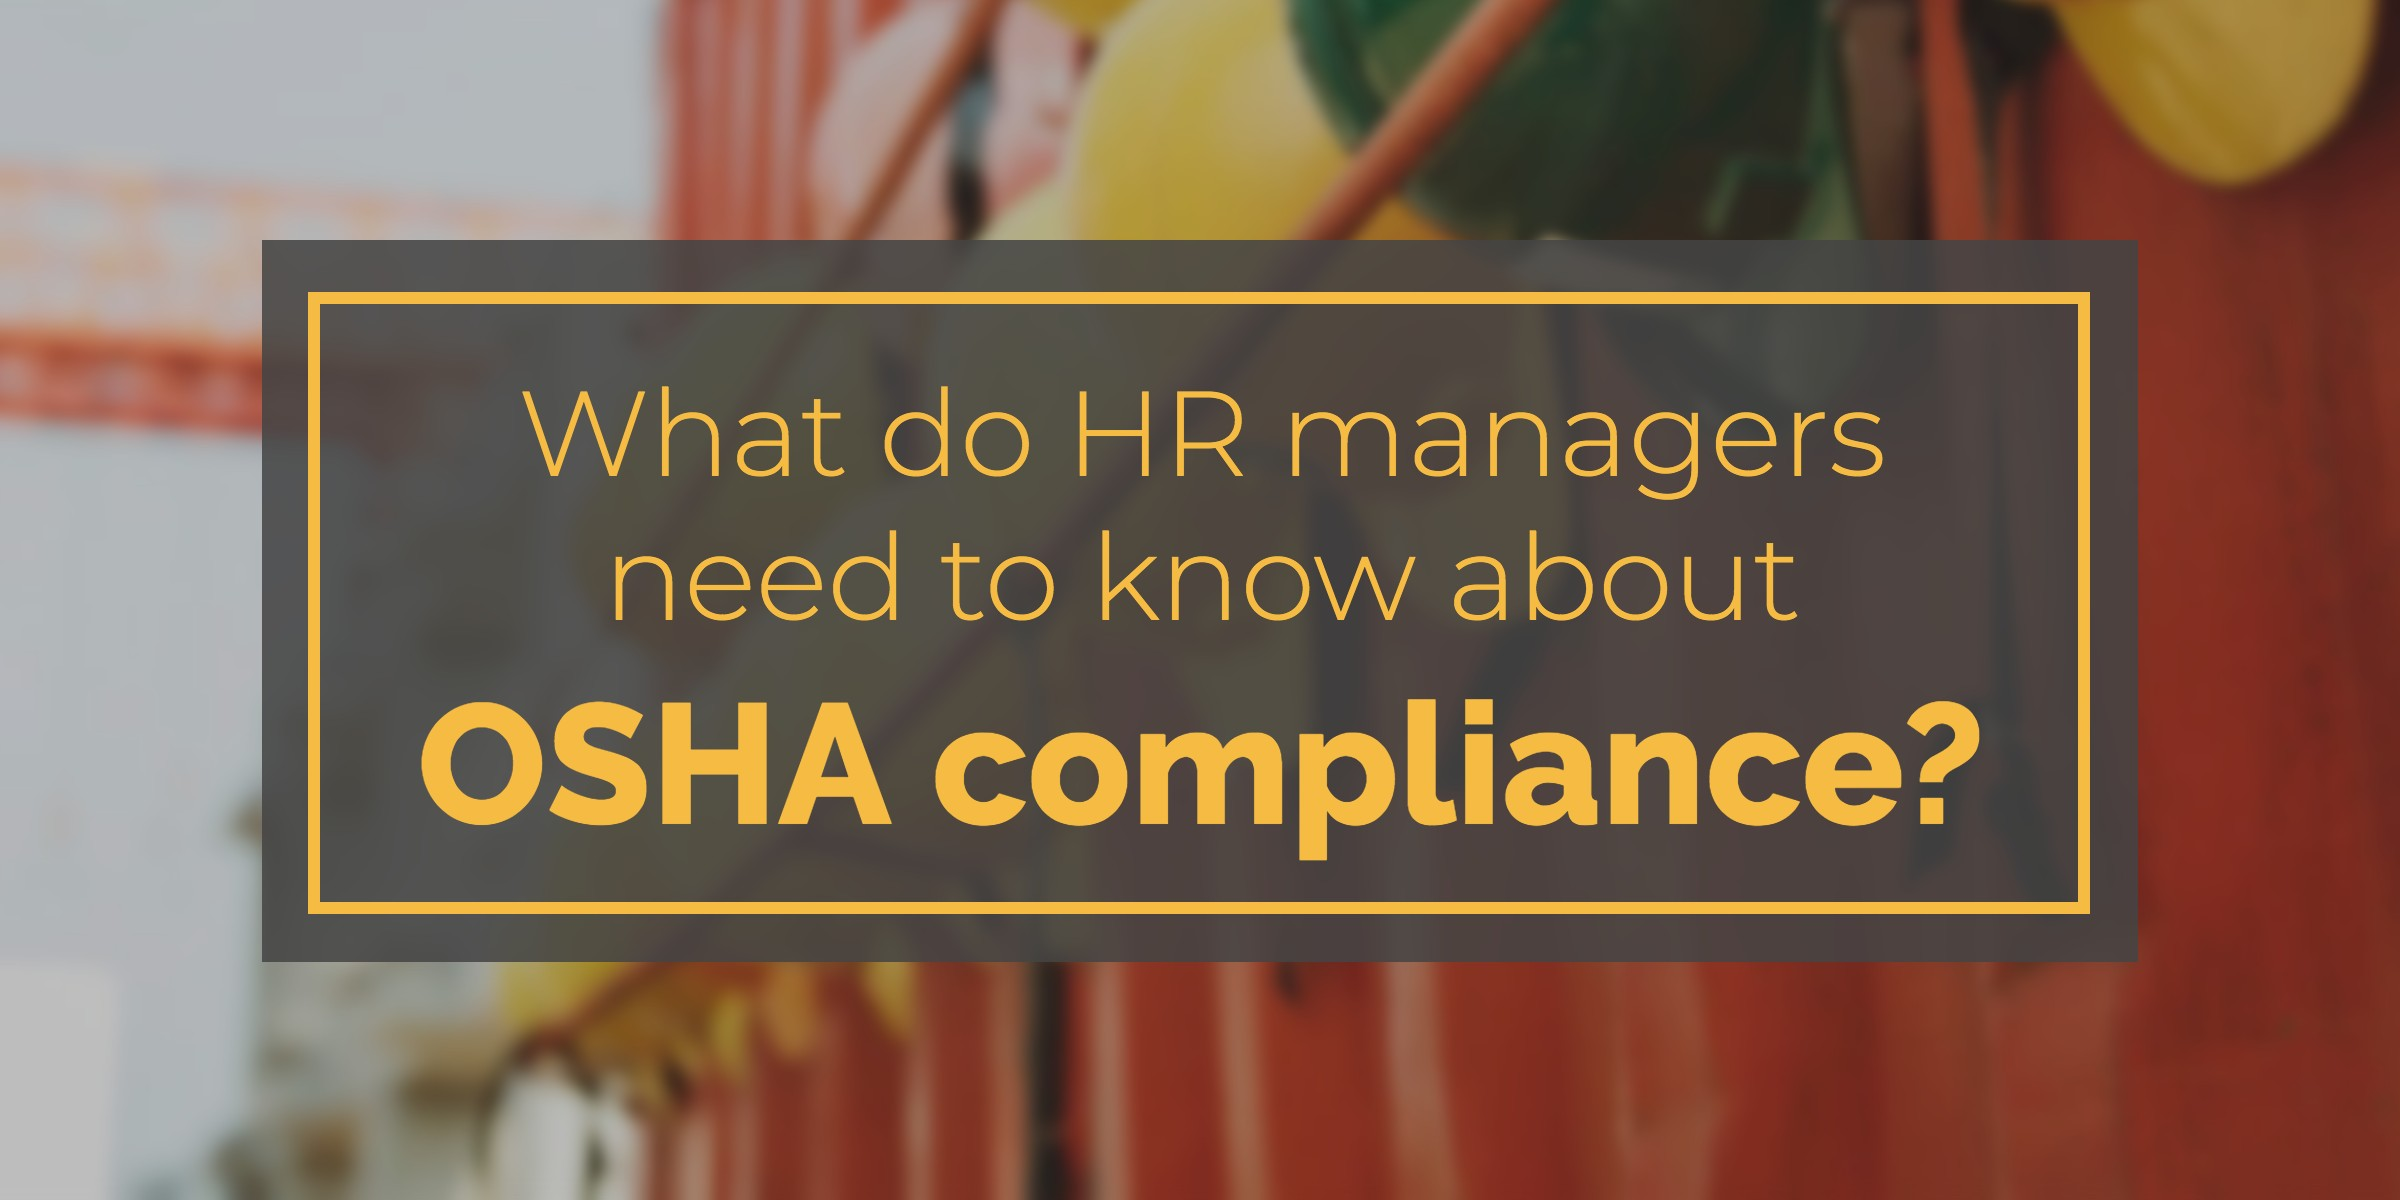 osha-compliance-hr-managers